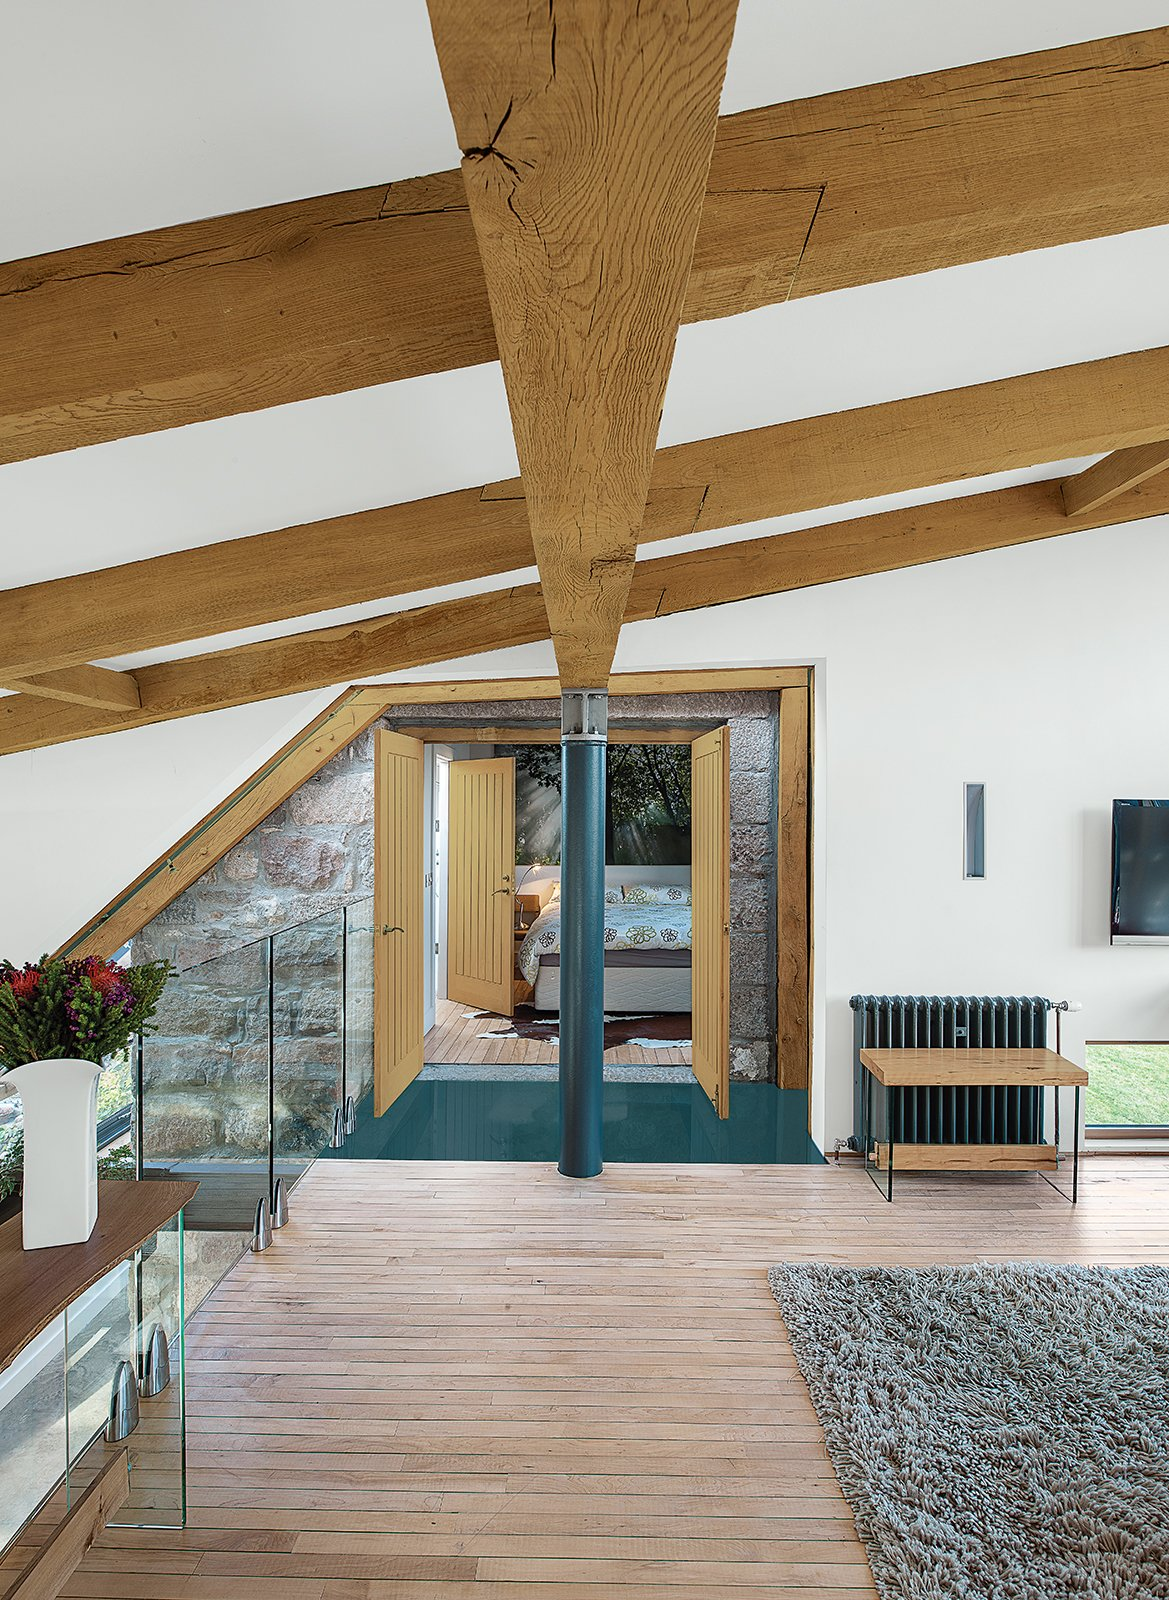 Living Room and Light Hardwood Floor Reclaimed oak beams dominate the upstairs lounge, which leads to the guest bedroom.  40+ Homes With Exposed Beams: Rustic to Modern by Luke Hopping from This Farmhouse is a Cor-Ten Steel-Clad Dream